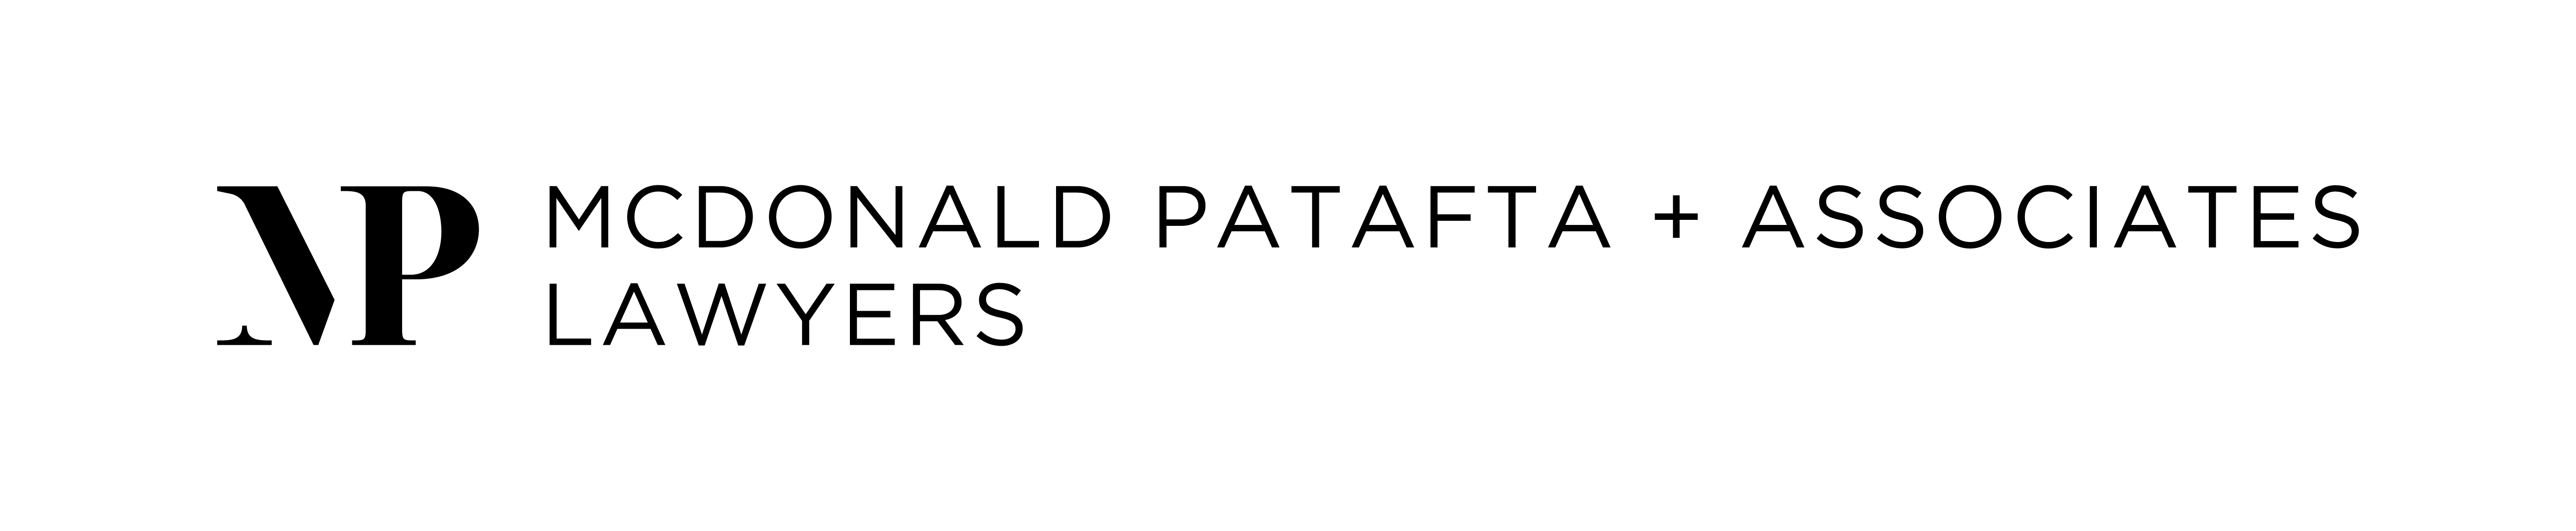 McDonald Patafta & Associates Lawyers